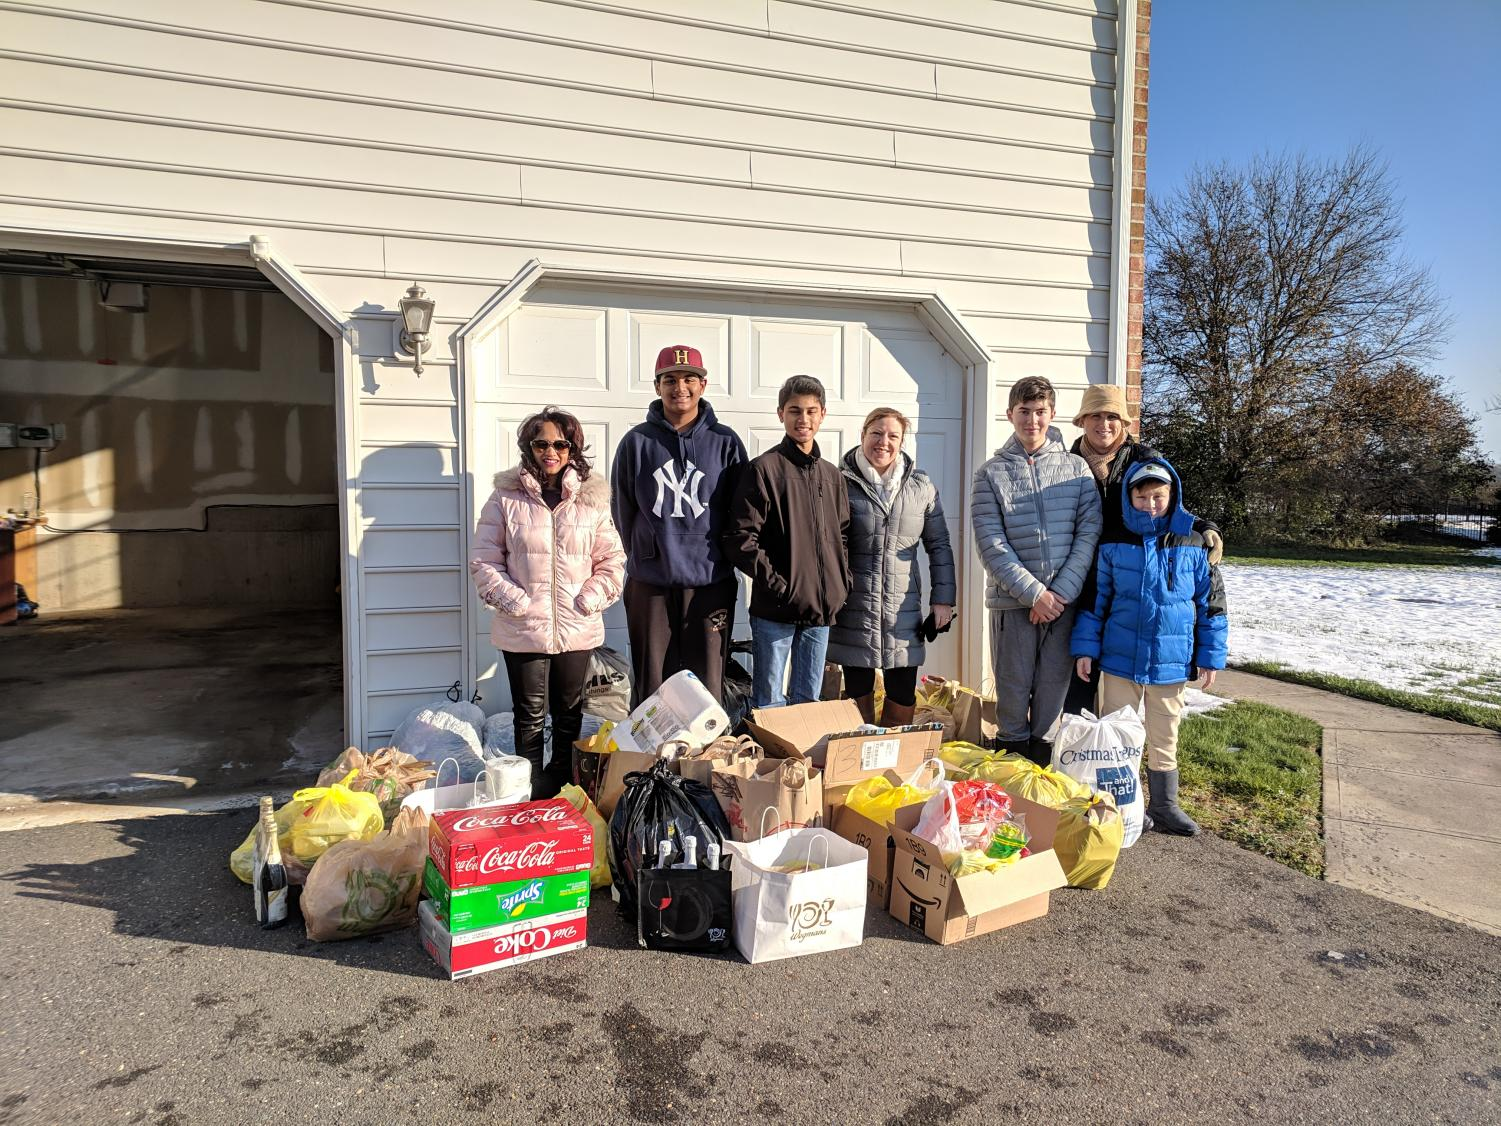 Aruna Dontabhaktuni, Tejas Patel, Miraj Vakil, Eileen Candelaria, Dean Milano, Robert Milano, and Devon Milano stand behind the food collected to be donated to families in need.